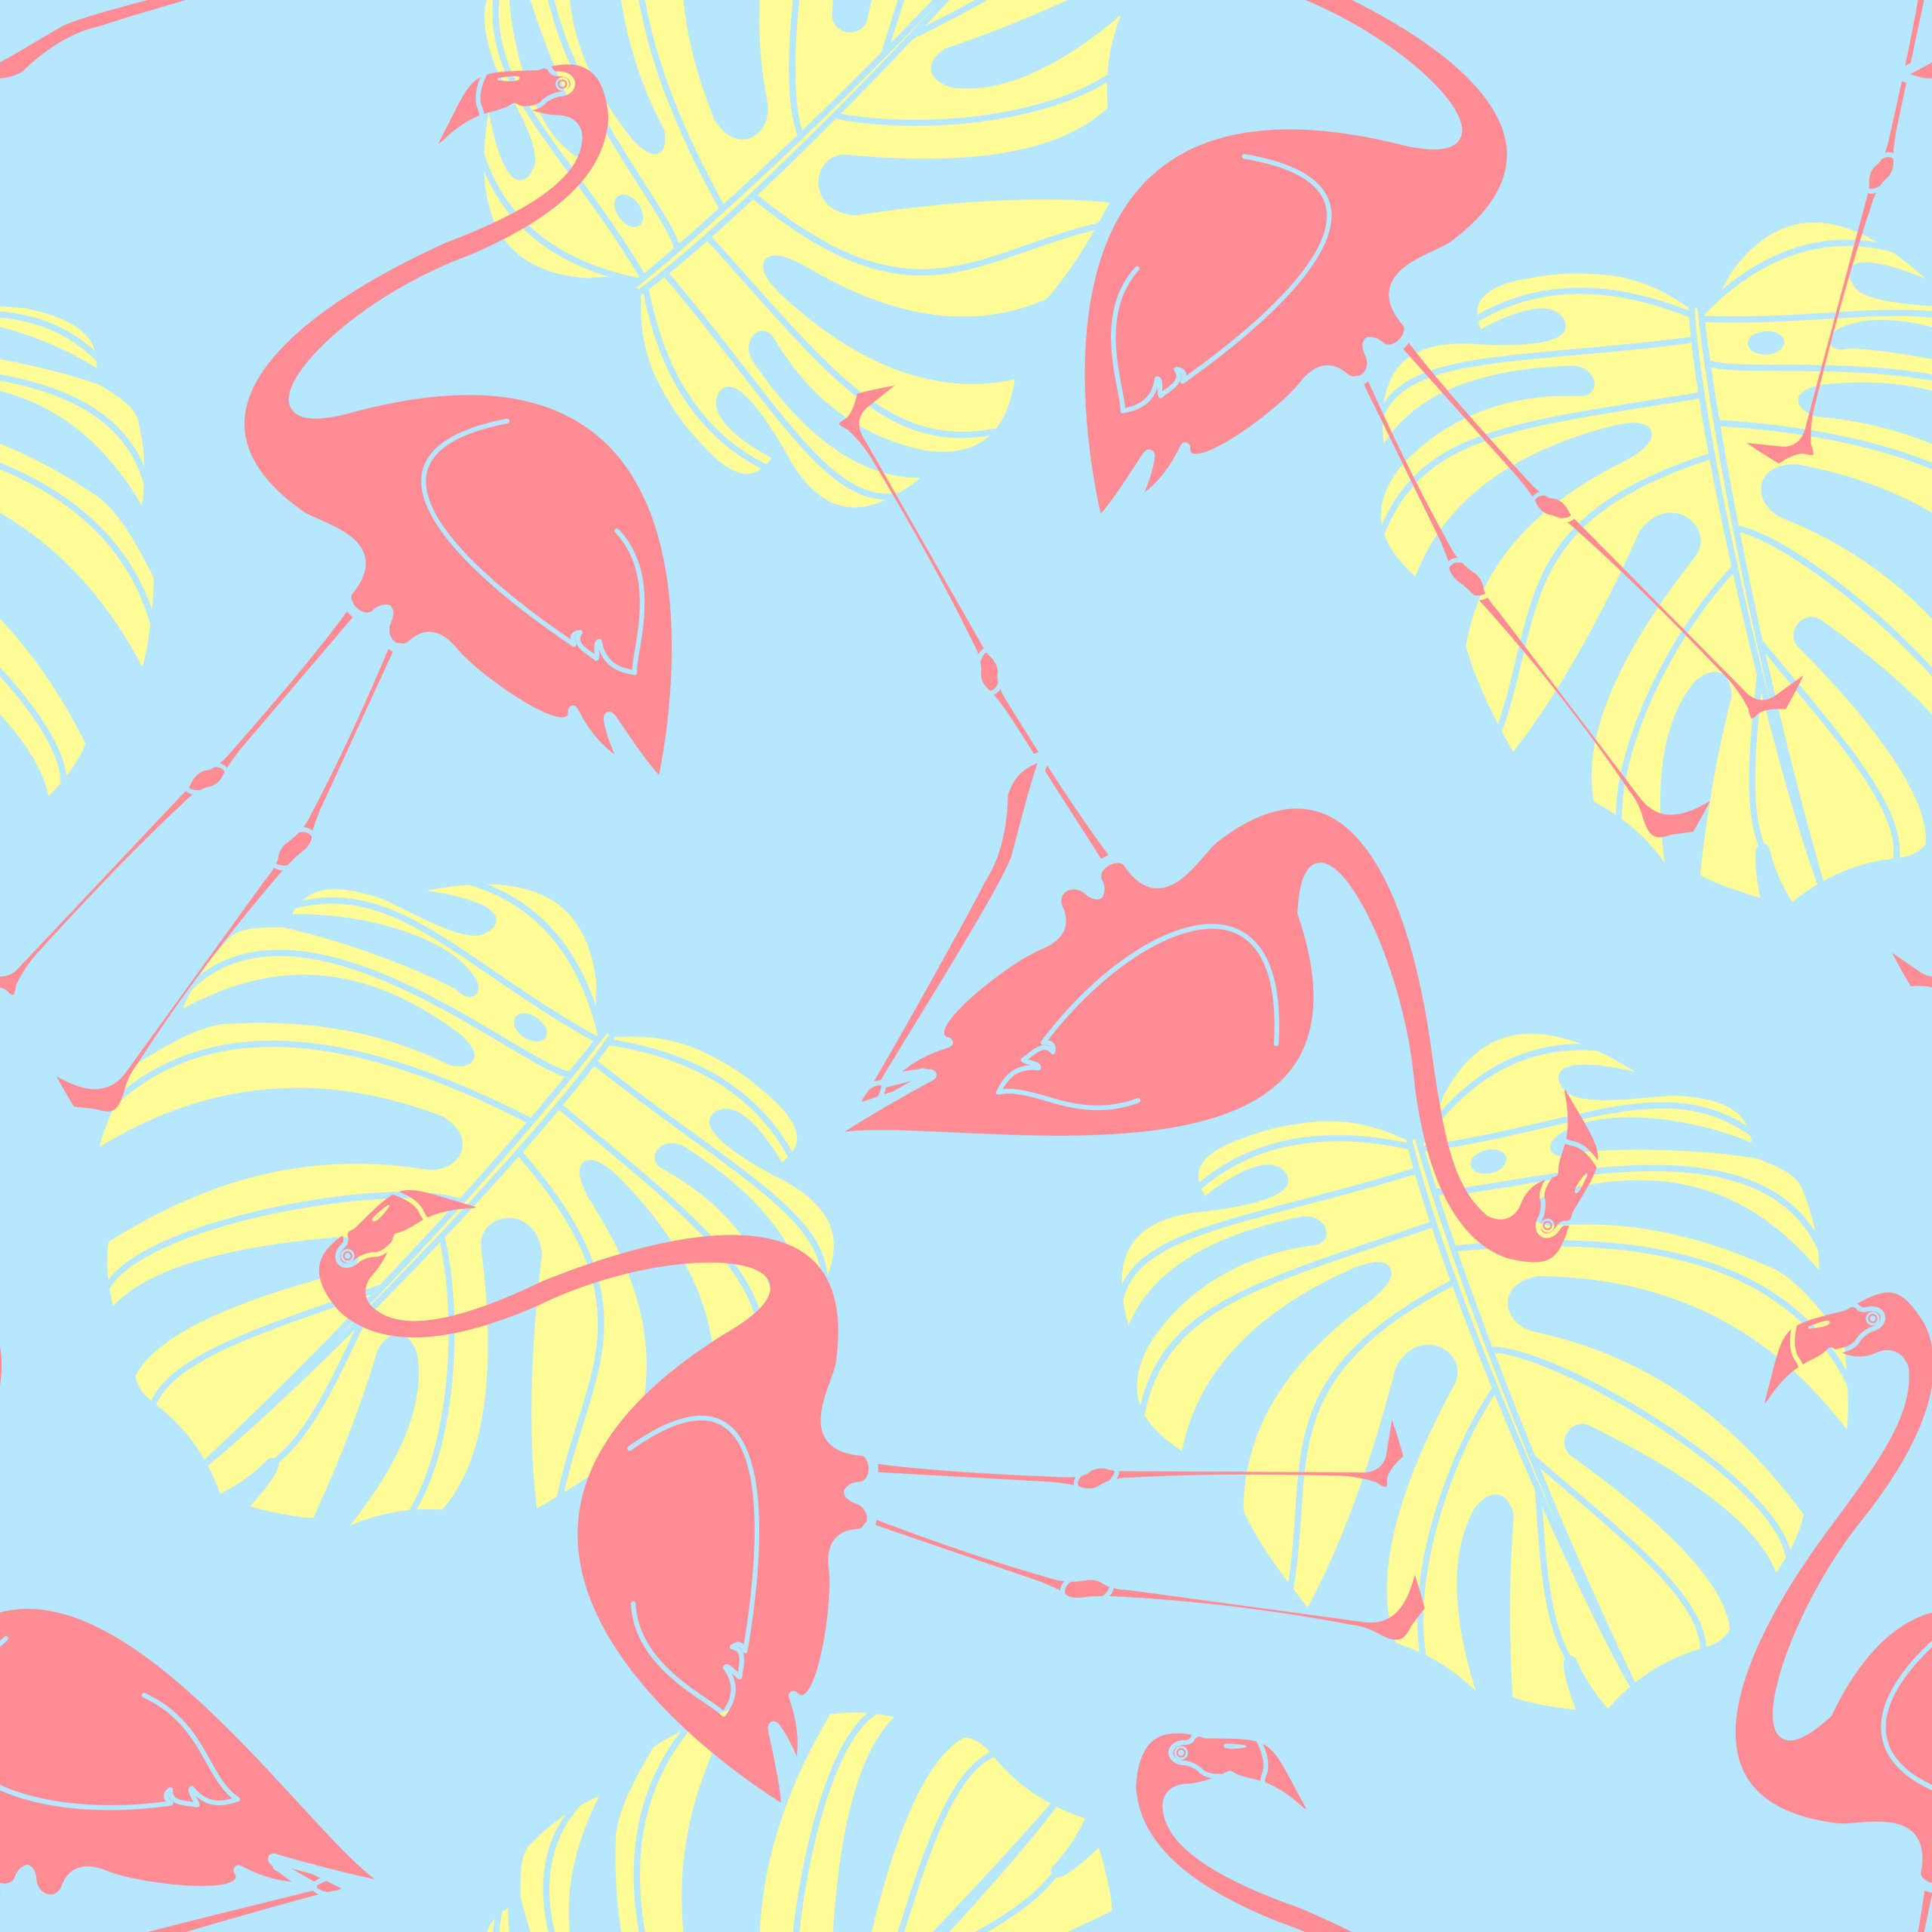 Silhouette flamingo and monstera random on blue background. Seamless pattern background design for Summer season in vector illustration.